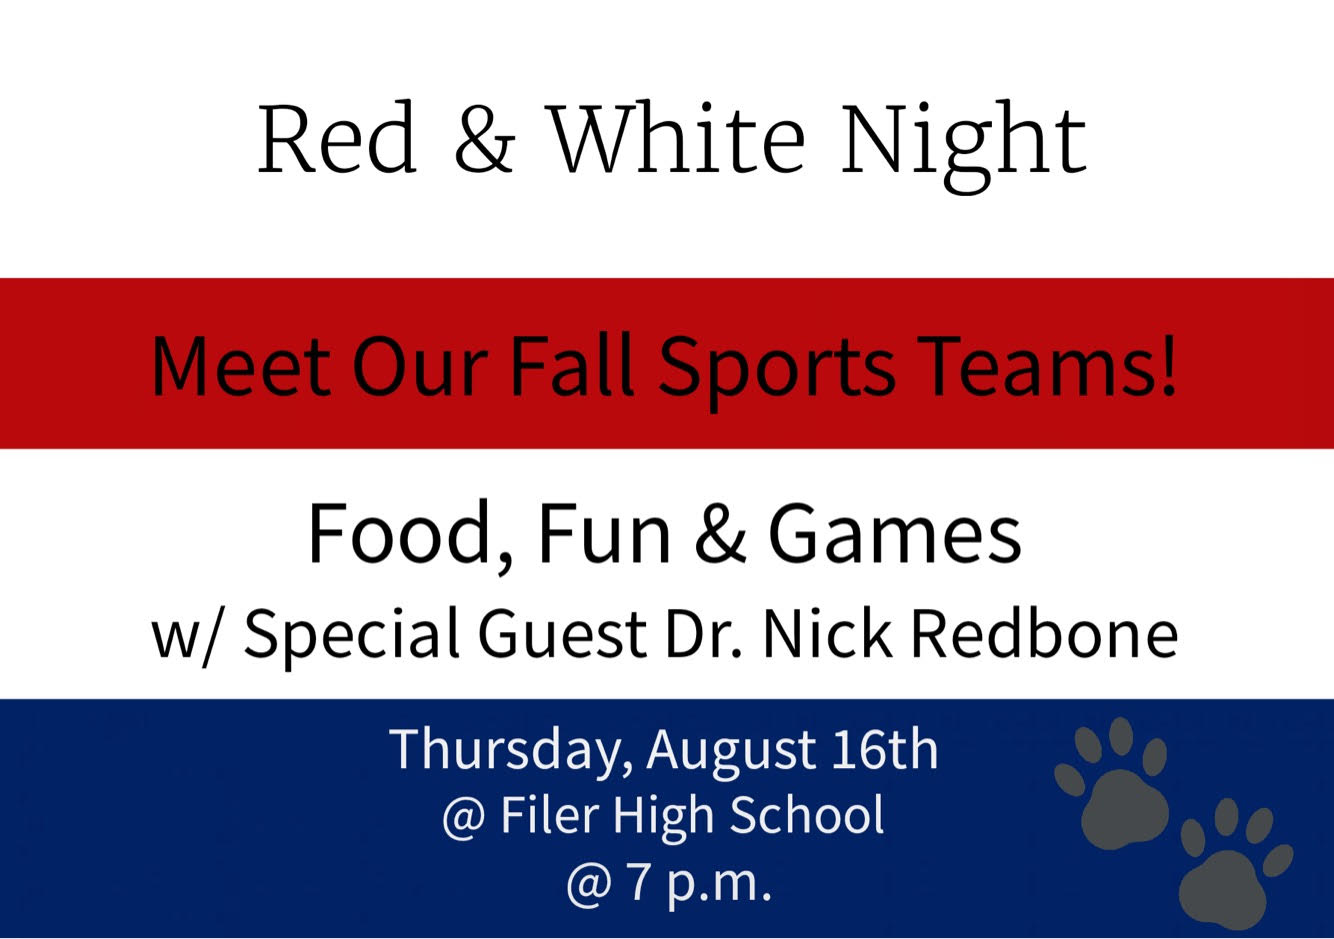 Red & White Night